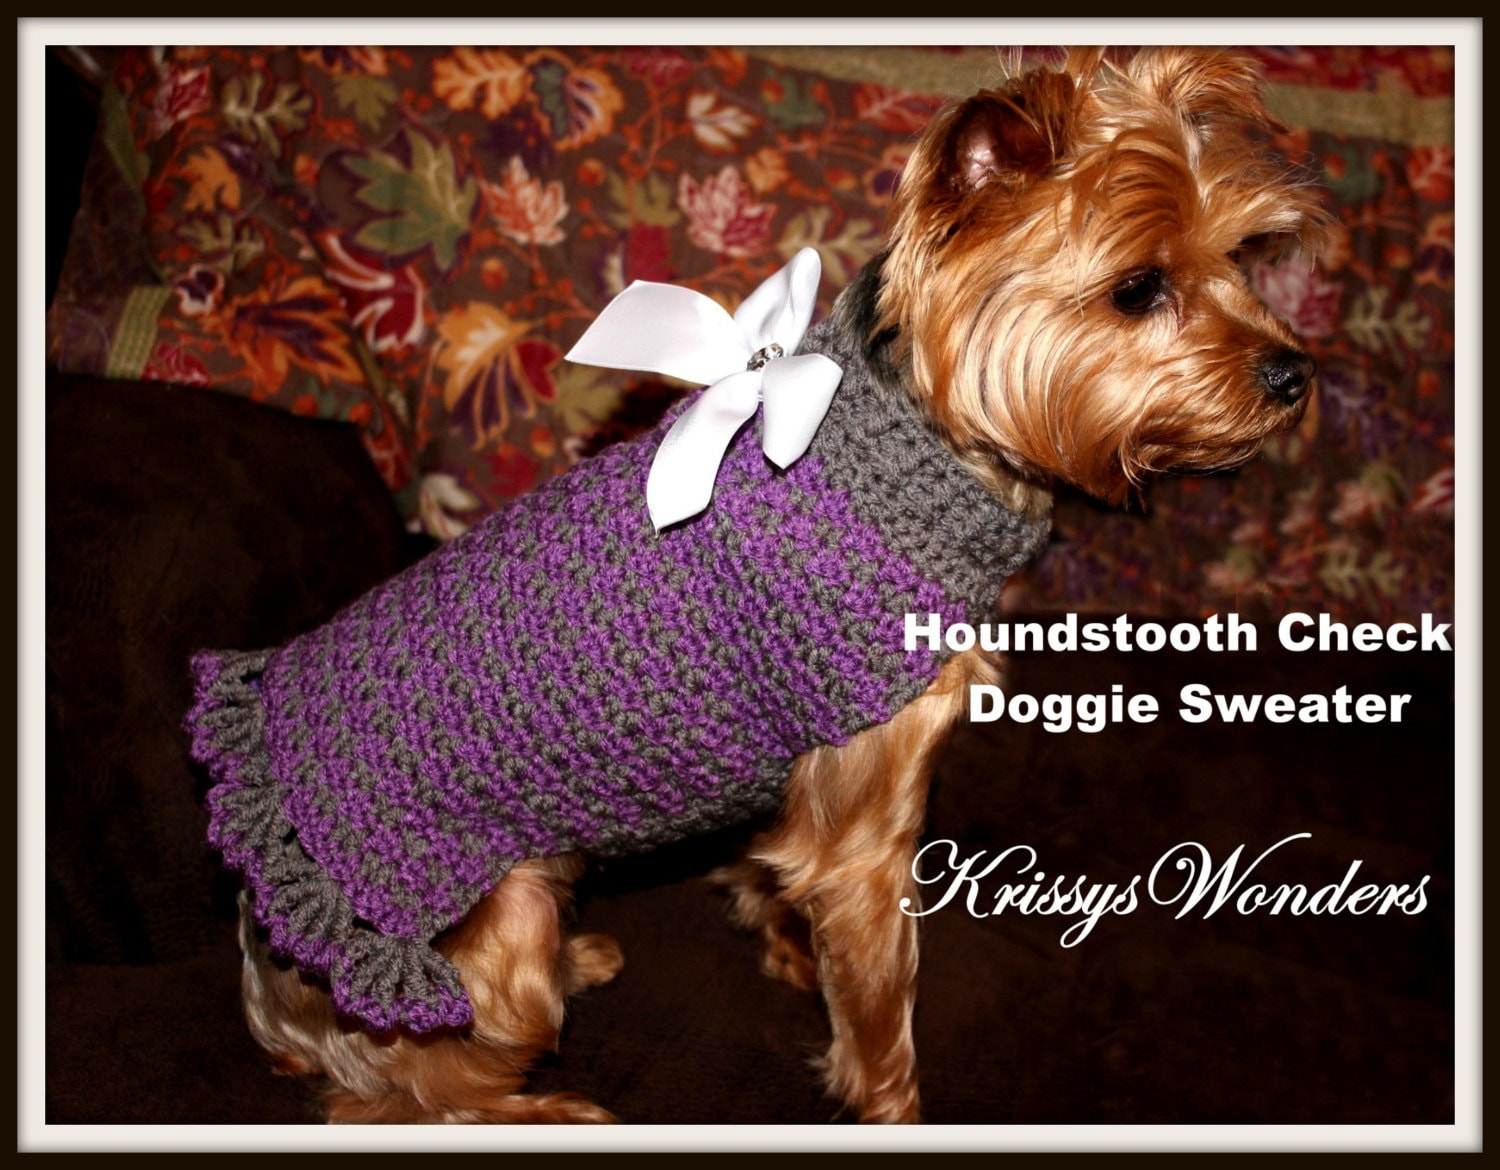 Dog Sweater Crochet Pattern Houndstooth Check Doggie Sweater Etsy